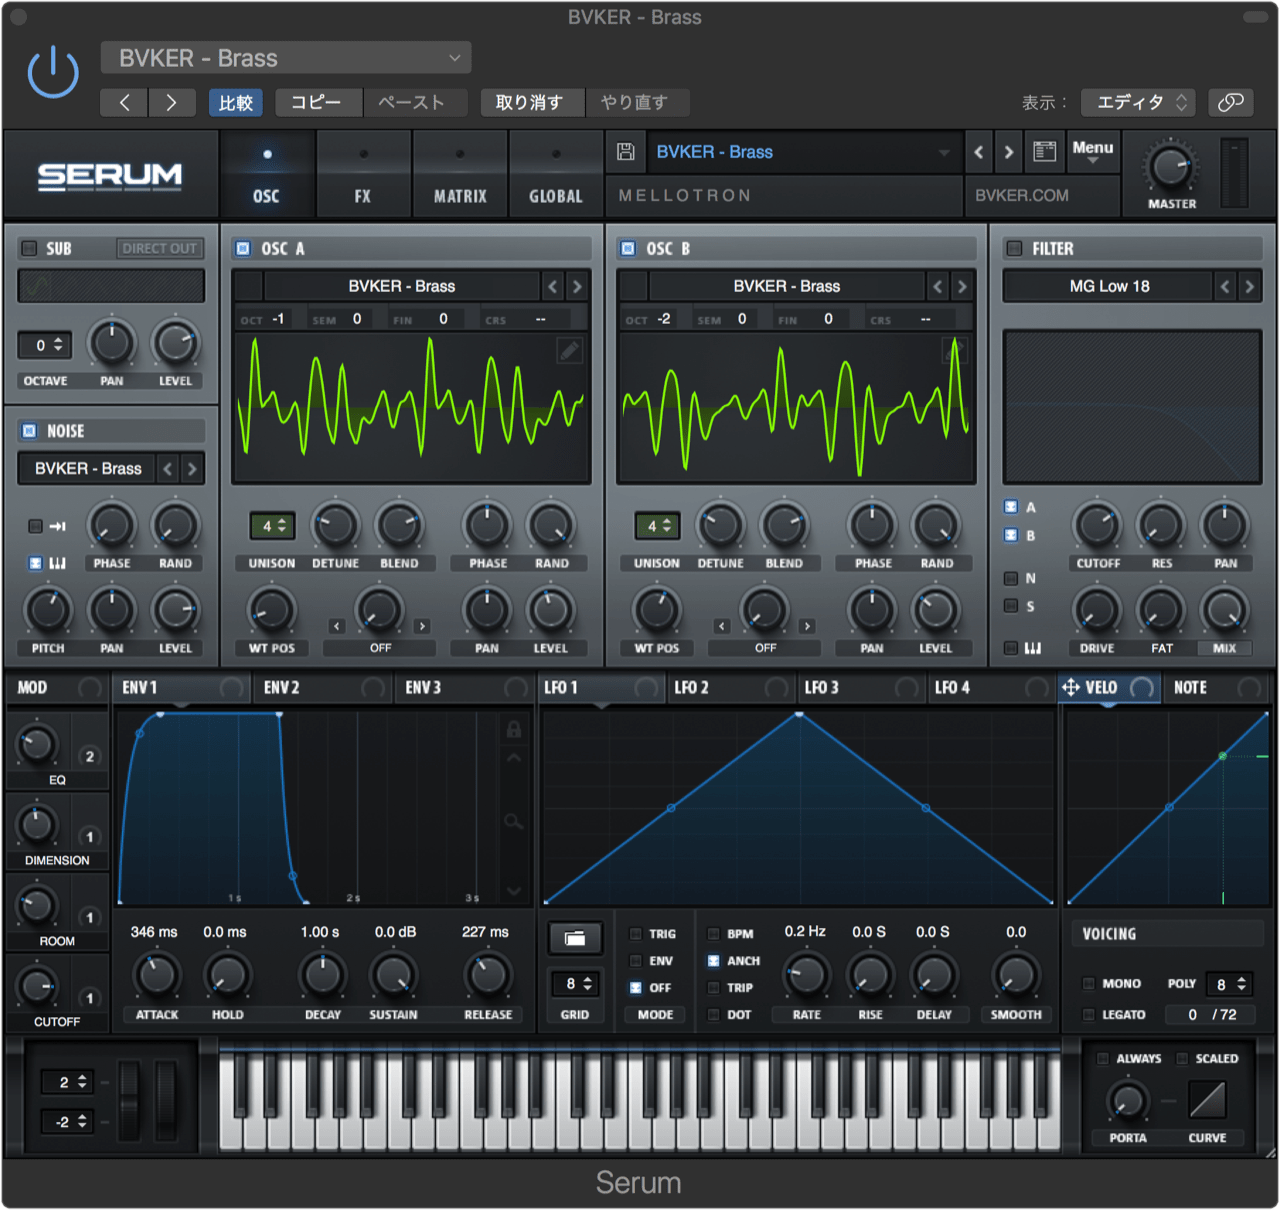 Free Mellotron Presets For Xfer Serum by BVKER.COM | Free Download on Hypeddit